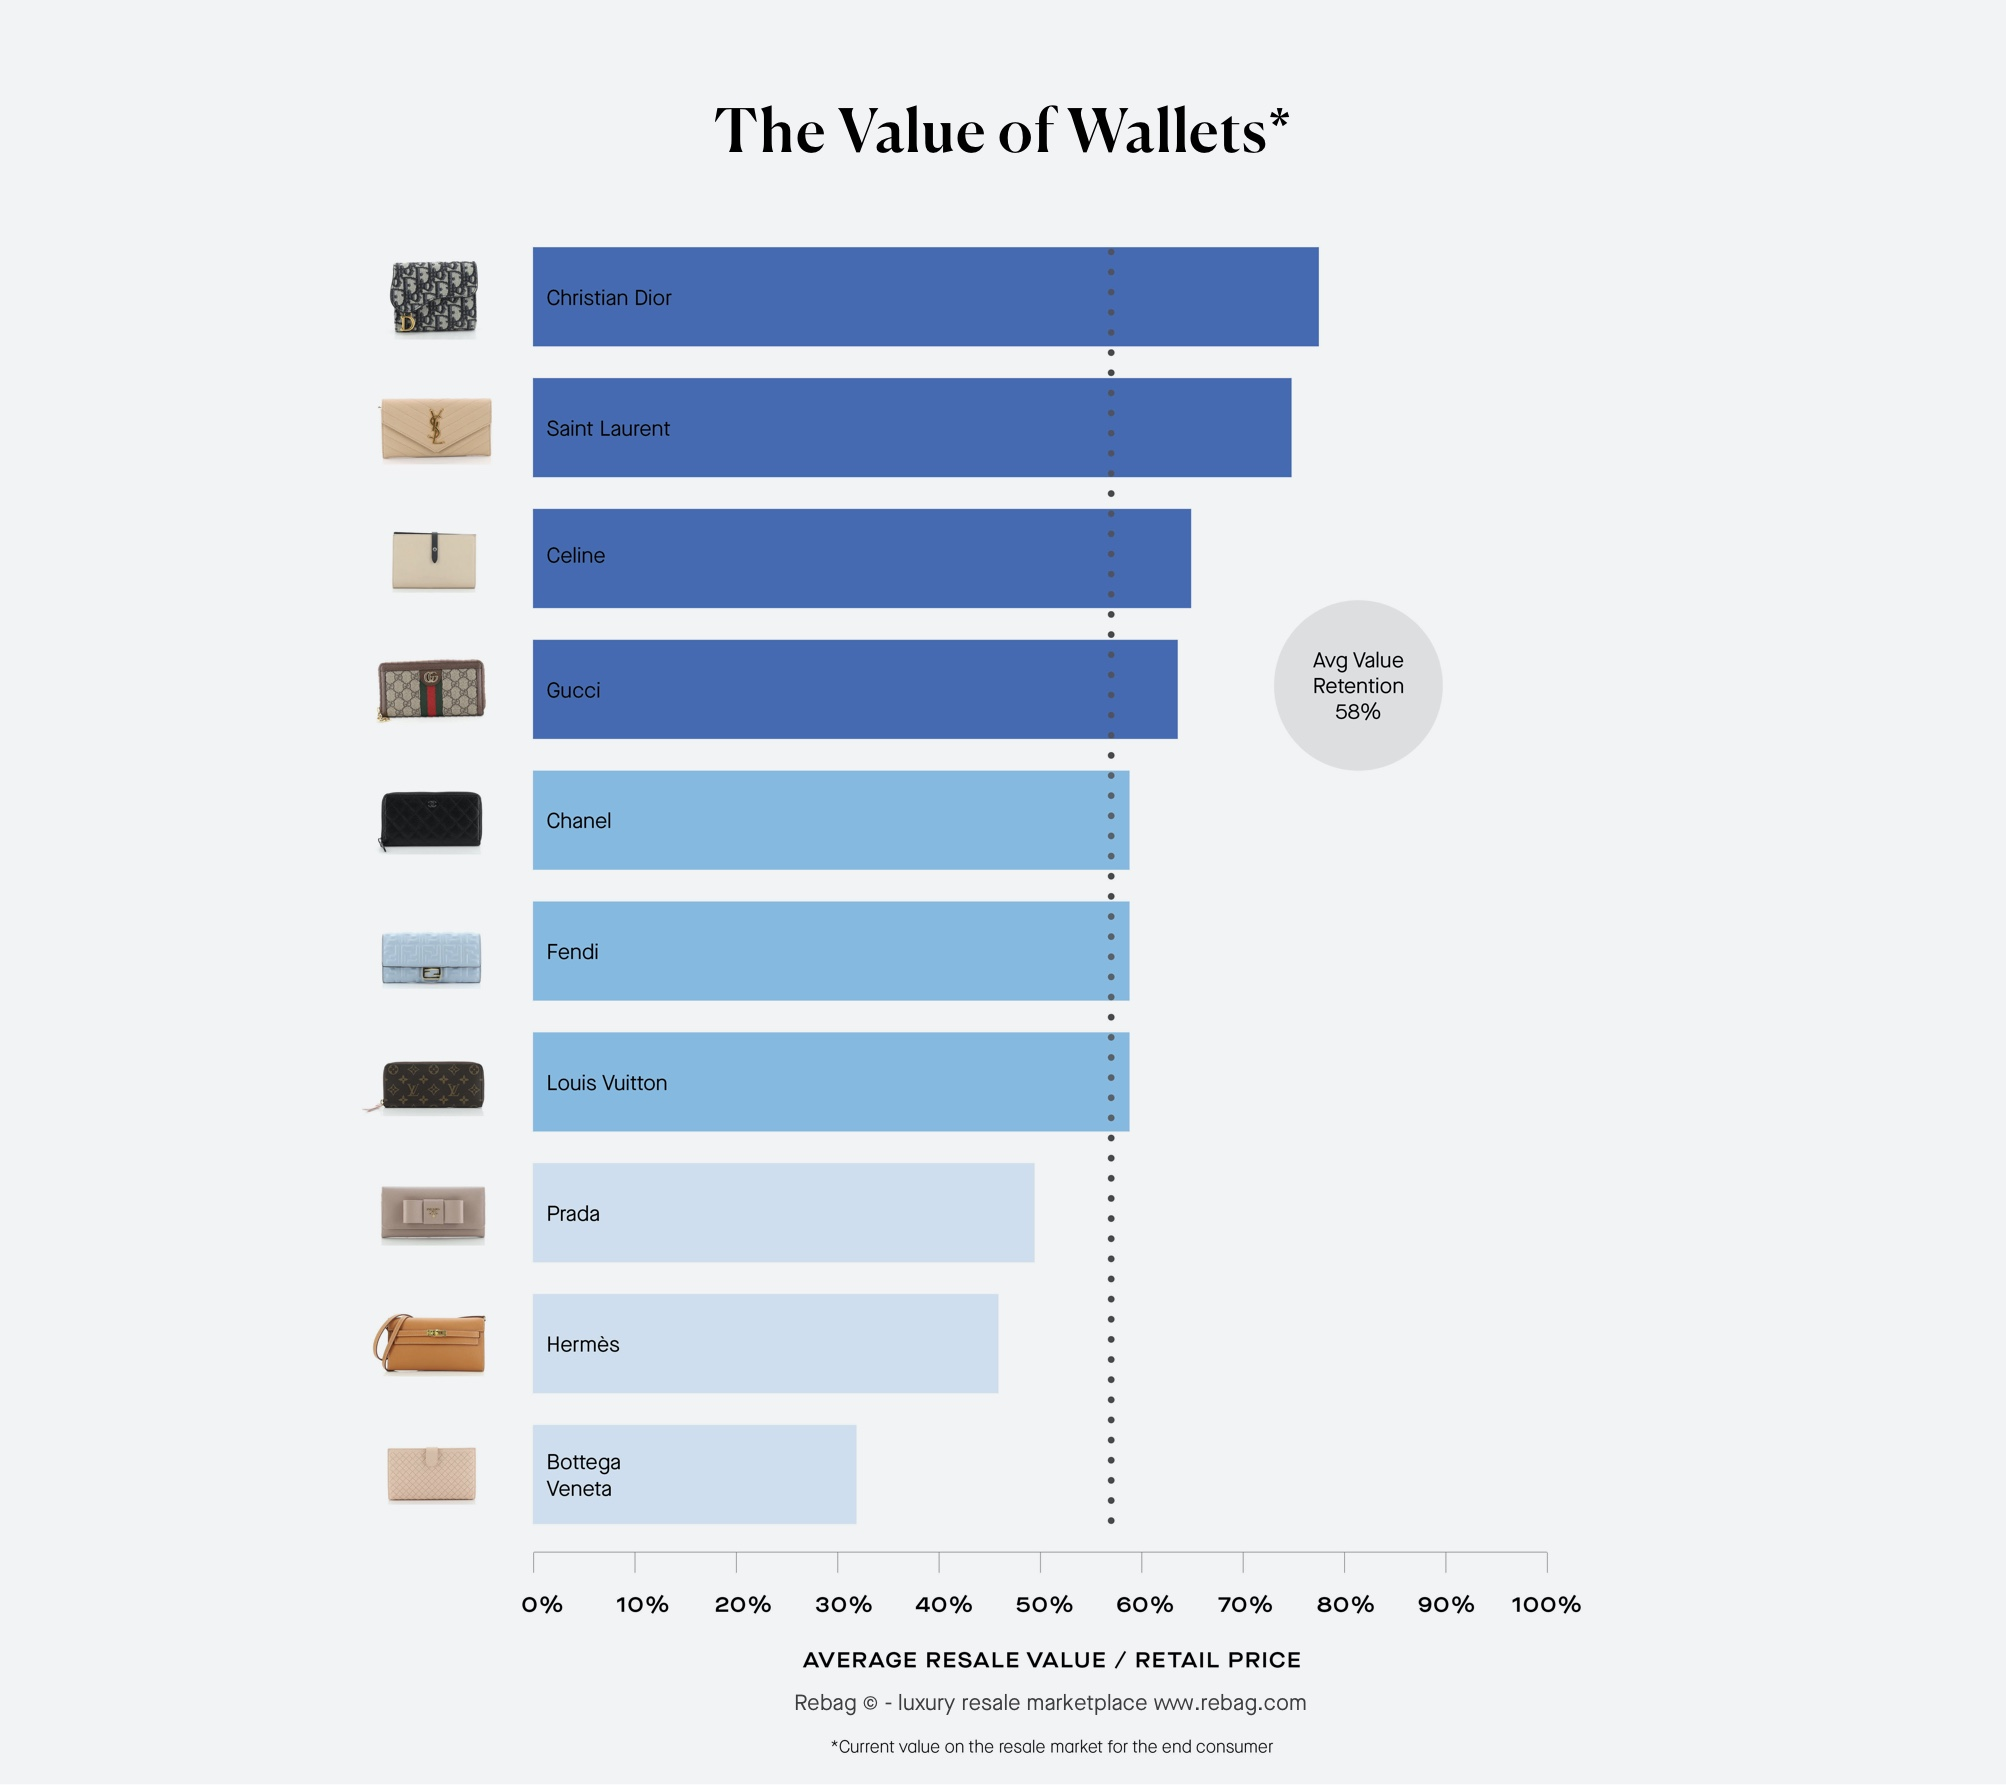 The value of luxury Wallets by brand - average resale value / retail price